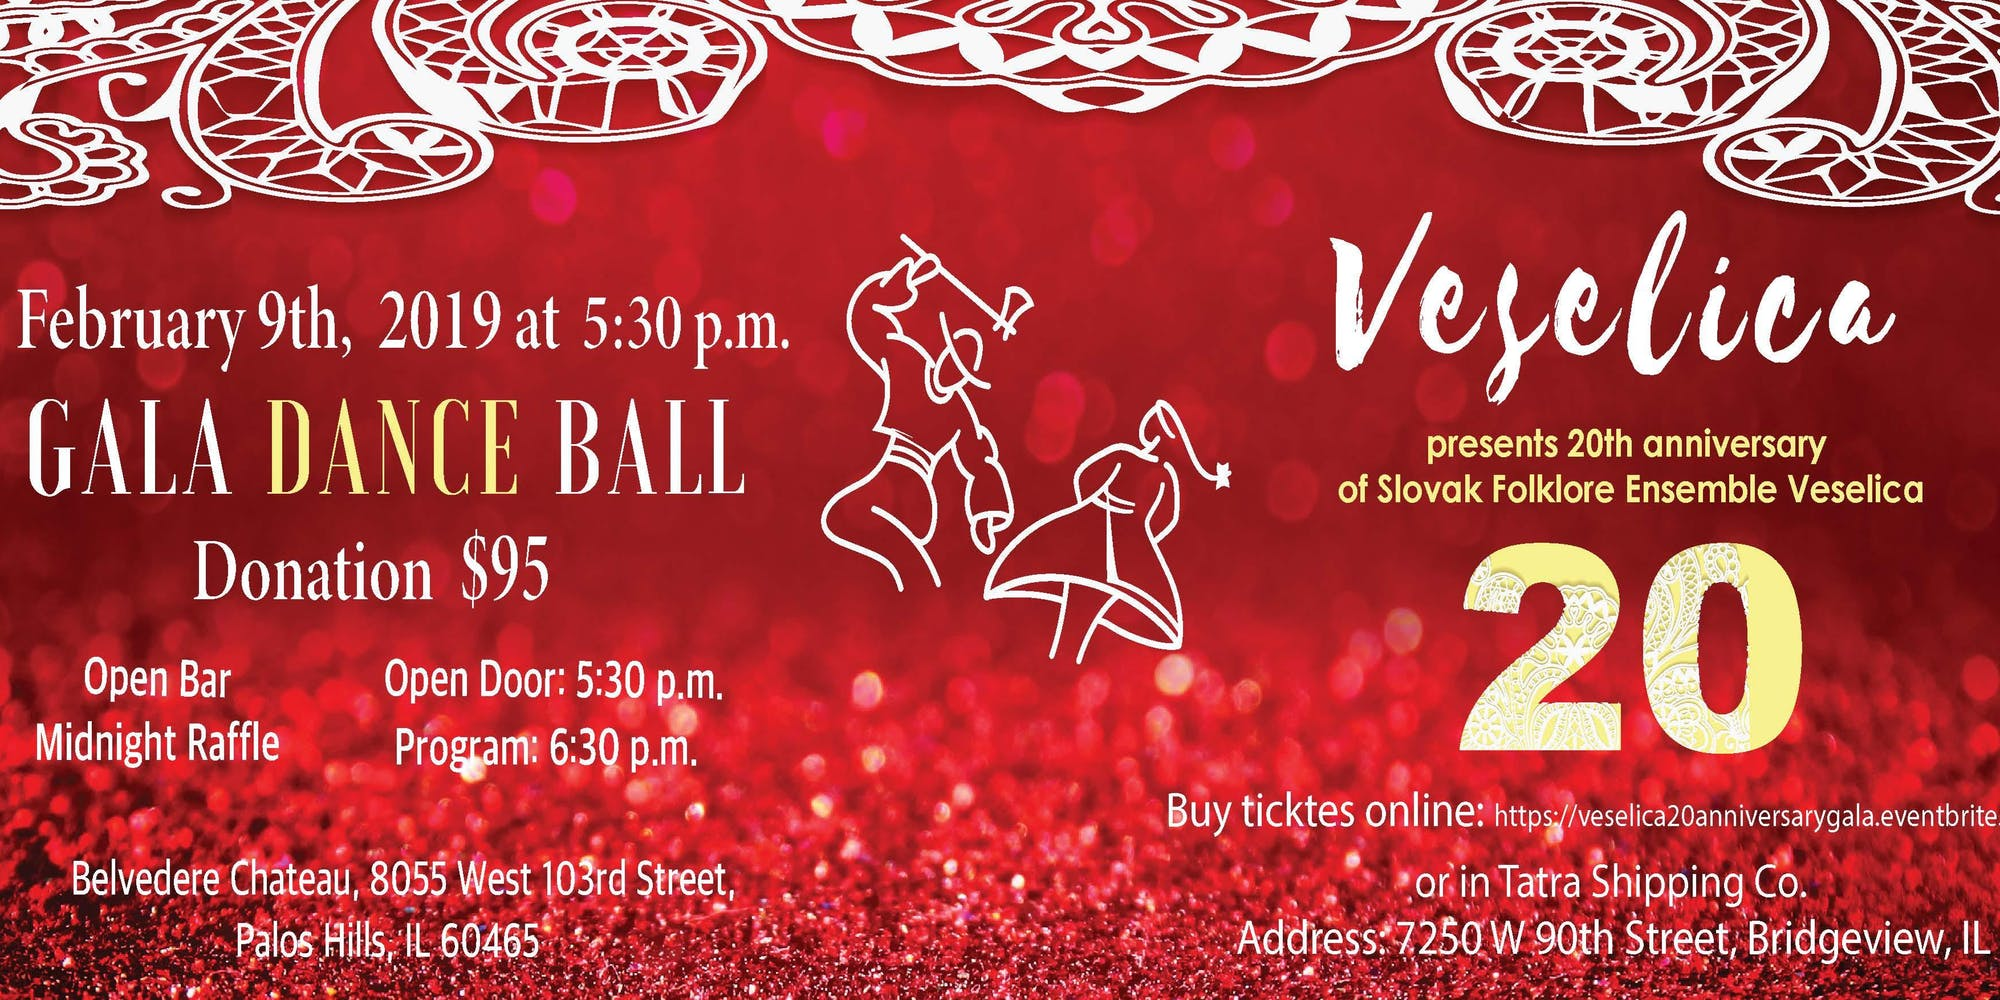 Gala Ball 2019 Chicago - 20th Anniversary of Slovak Folklore Ensemble Veselica...